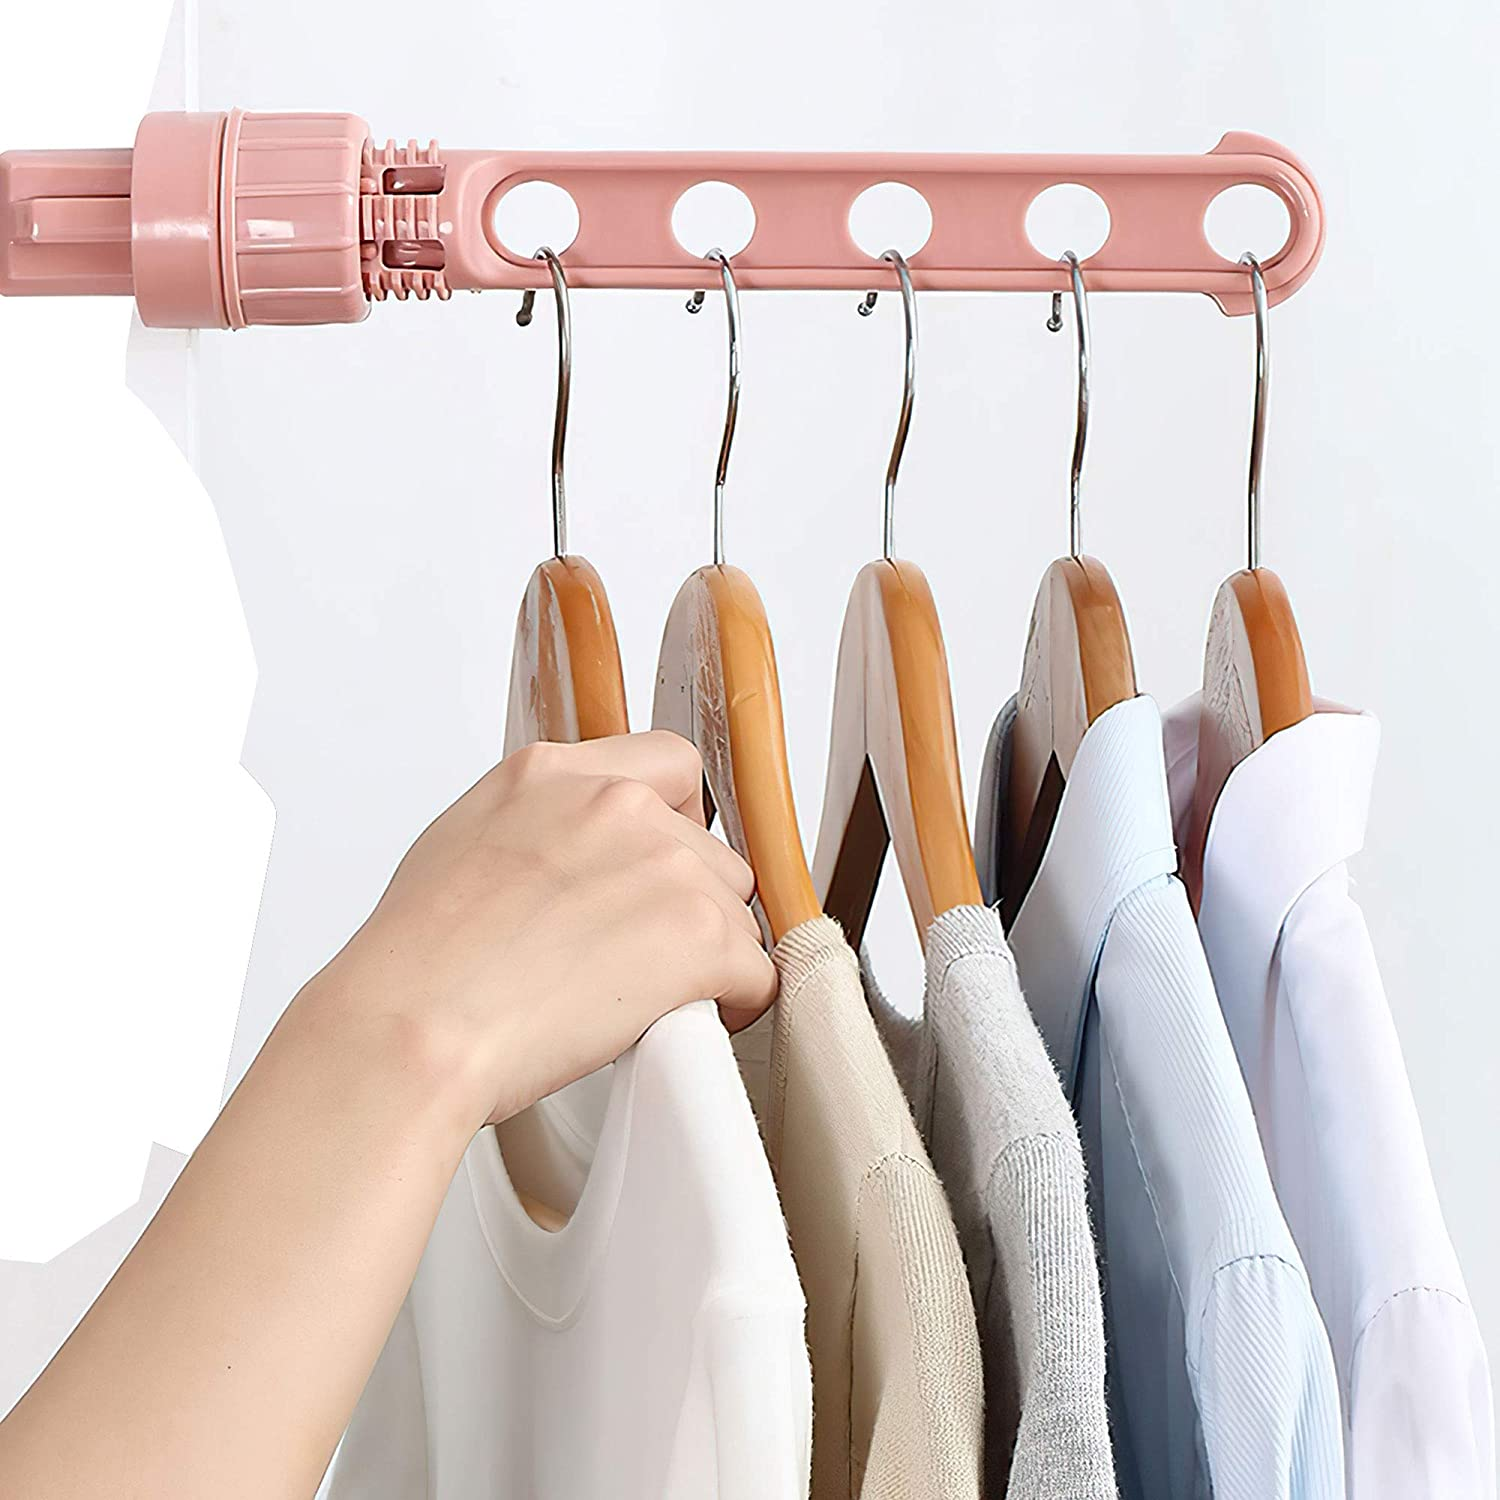 Special price for a limited time Safety and trust Portable Clothes Rack Racks Plast for Hanging